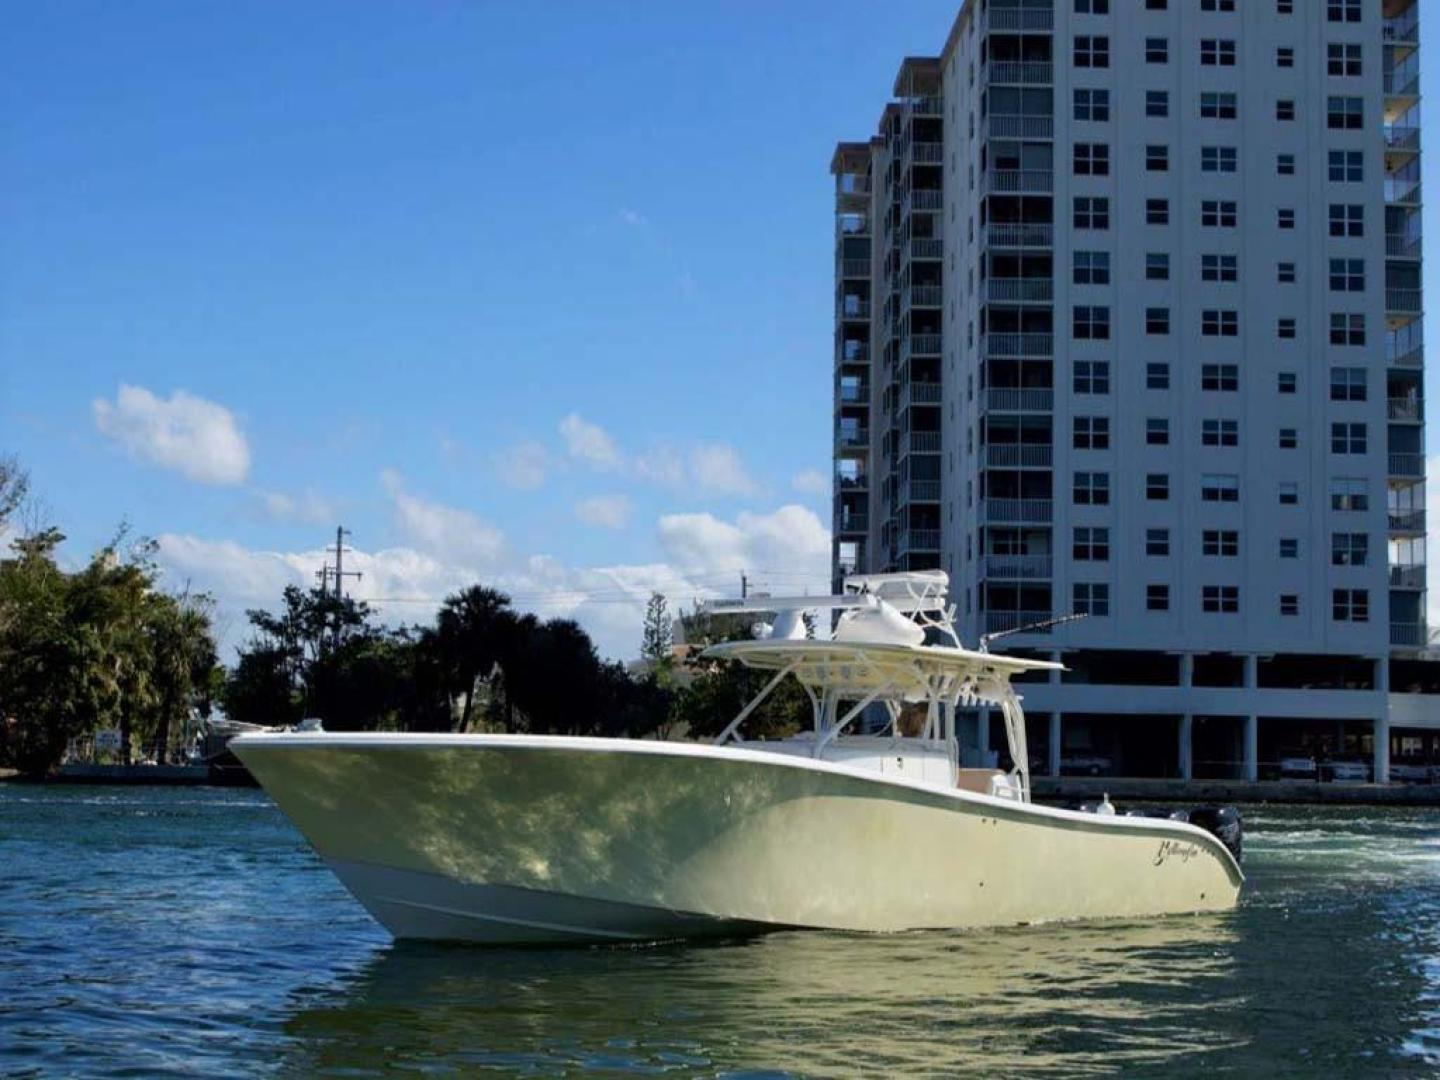 Yellowfin-42-Open-2009-Hard-Charger-Pompano-Florida-United-States-Port-929742